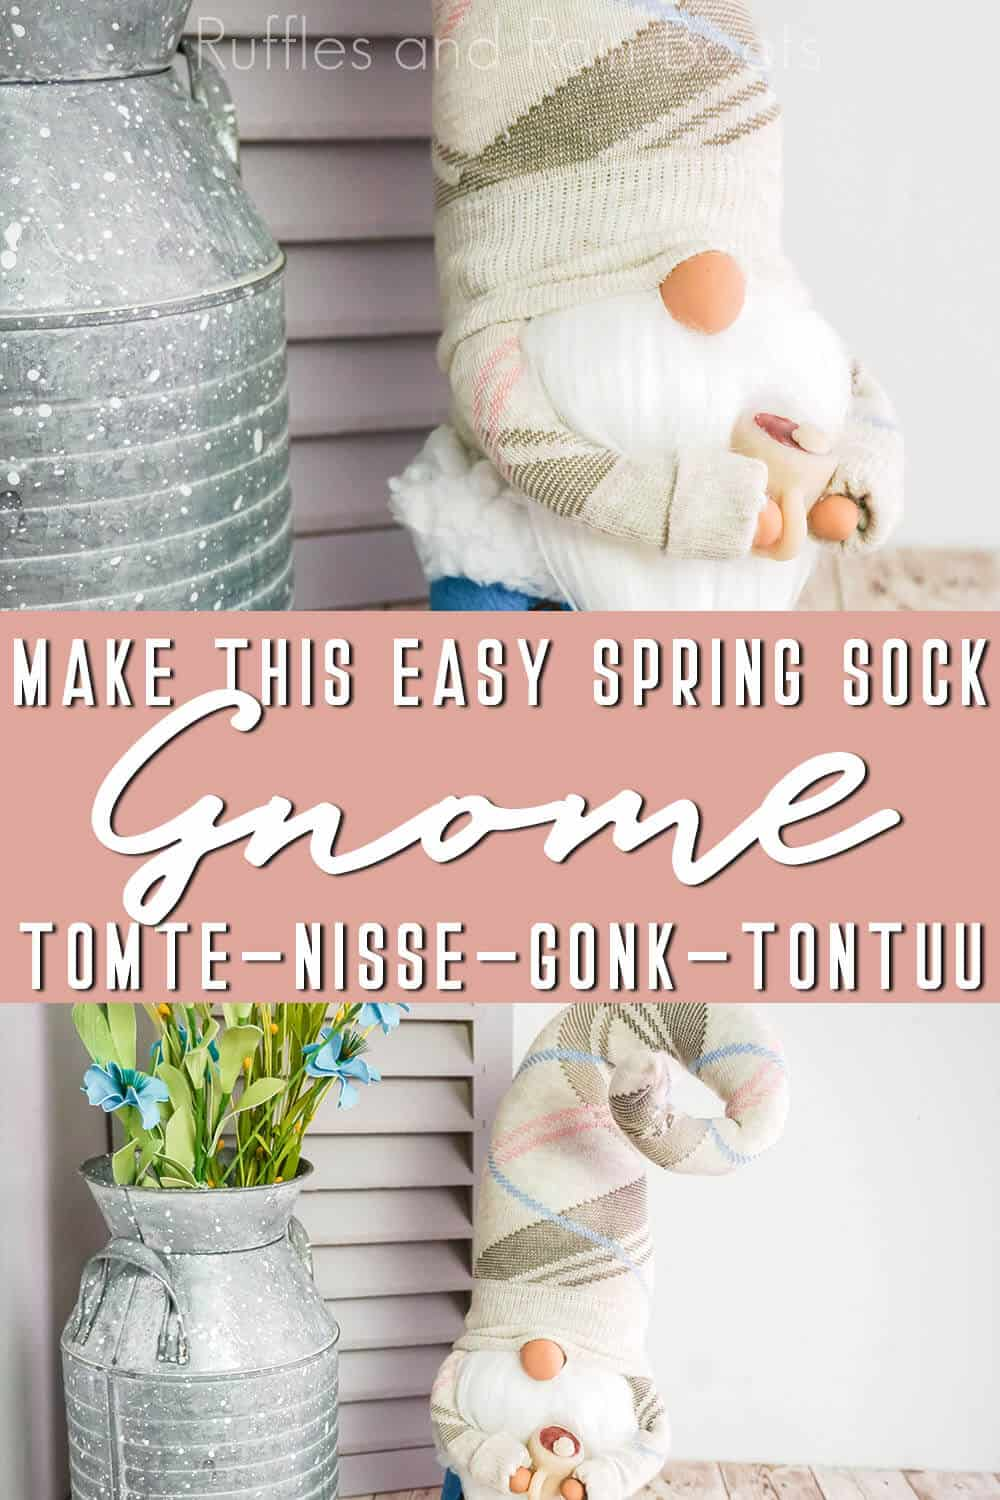 photo collage of farmhouse gnome for spring with text which reads make this easy spring sock gnome tomte nisse gonk tontuu